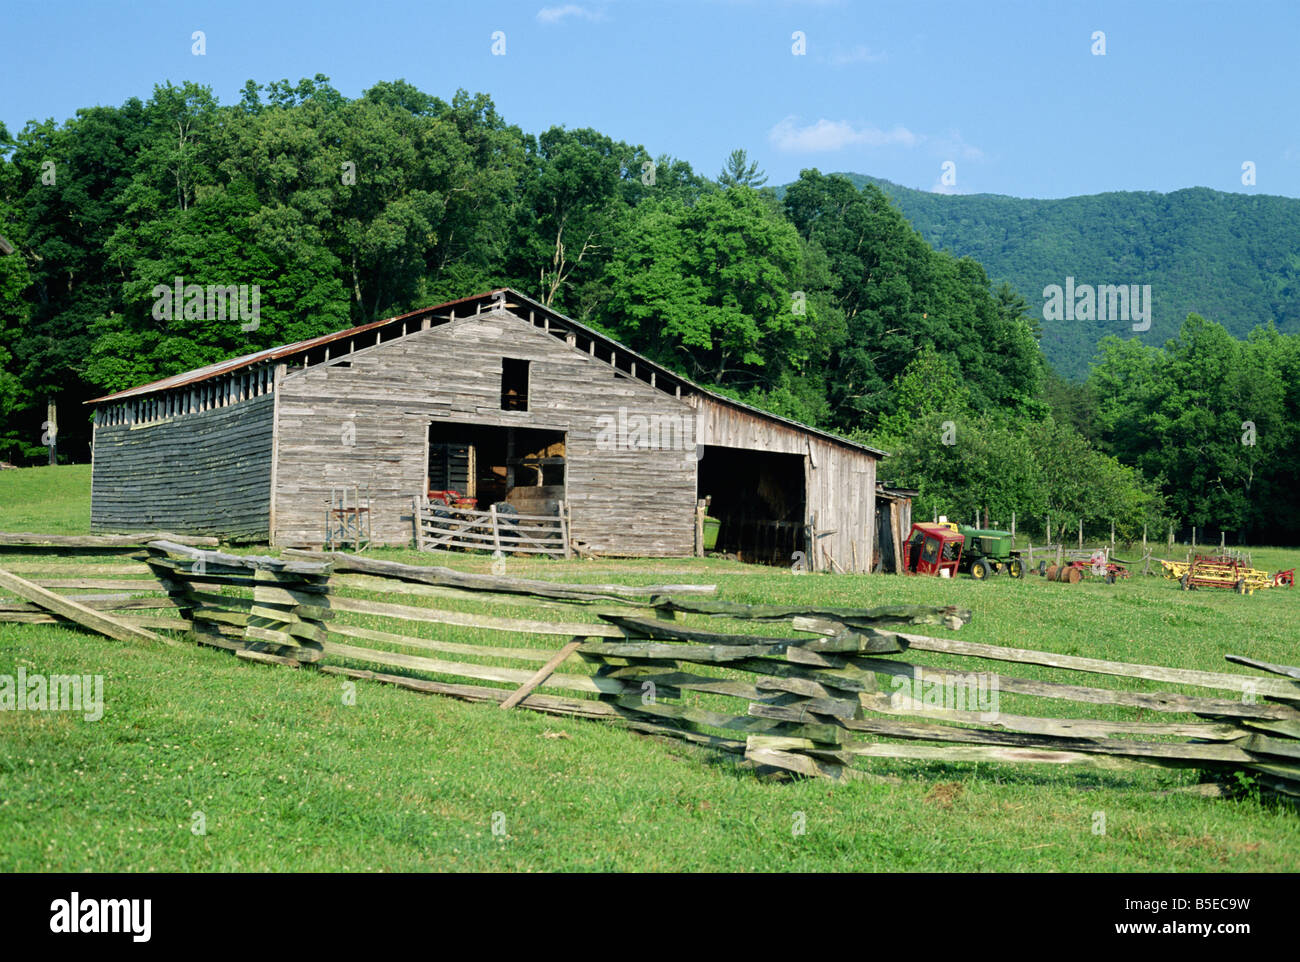 Old wooden barn on farmstead in the old pioneer community at Cades Cove, Great Smoky Mountains National Park, Tennessee, - Stock Image